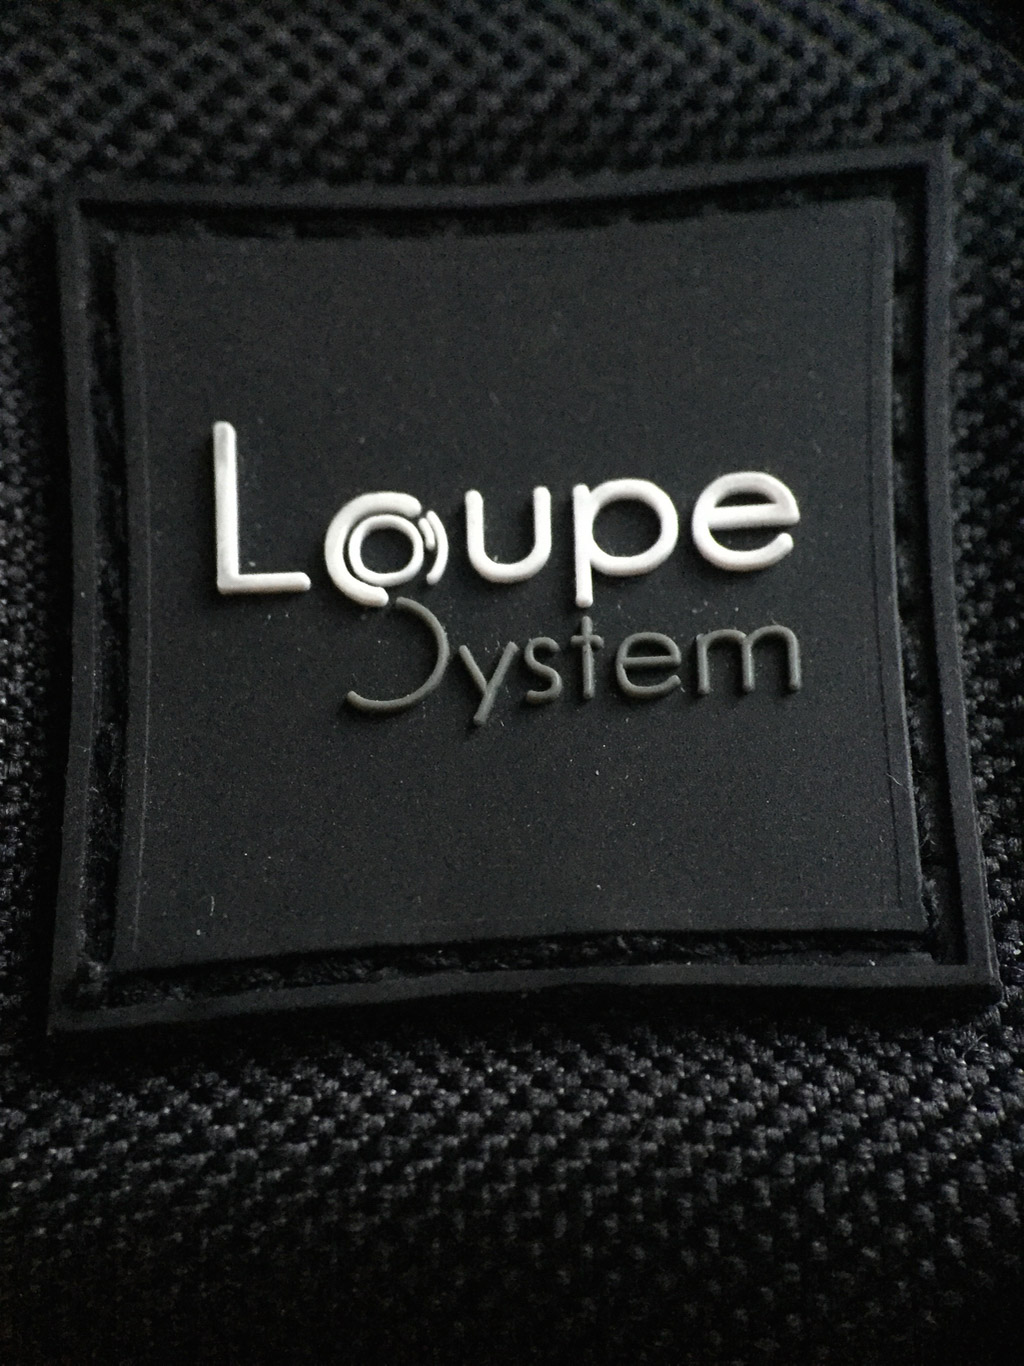 Loupe System iPhone, Loupe System review, LoupeSystem review, LoupeSystem iPhone